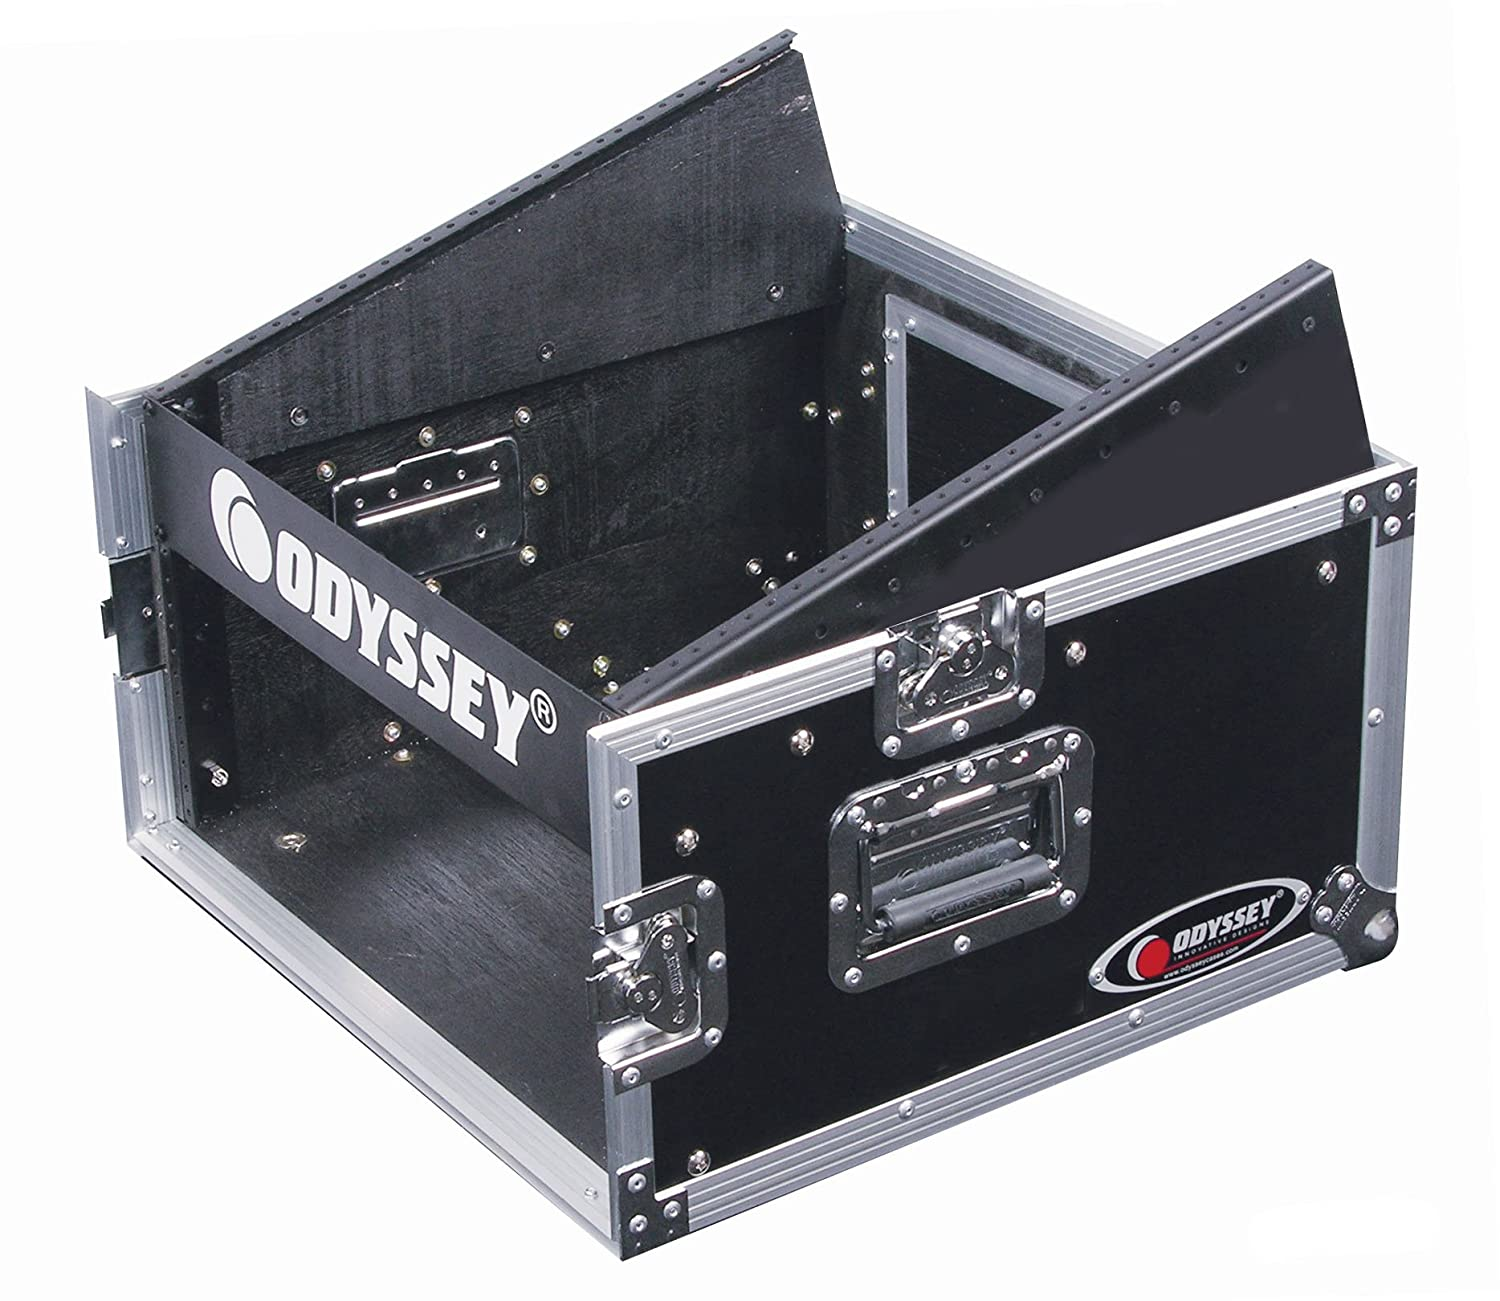 Odyssey FZ1004 Flight Zone Ata Combo Rack: 10u Slant, 4u Vertical Odyssey Innovative Designs